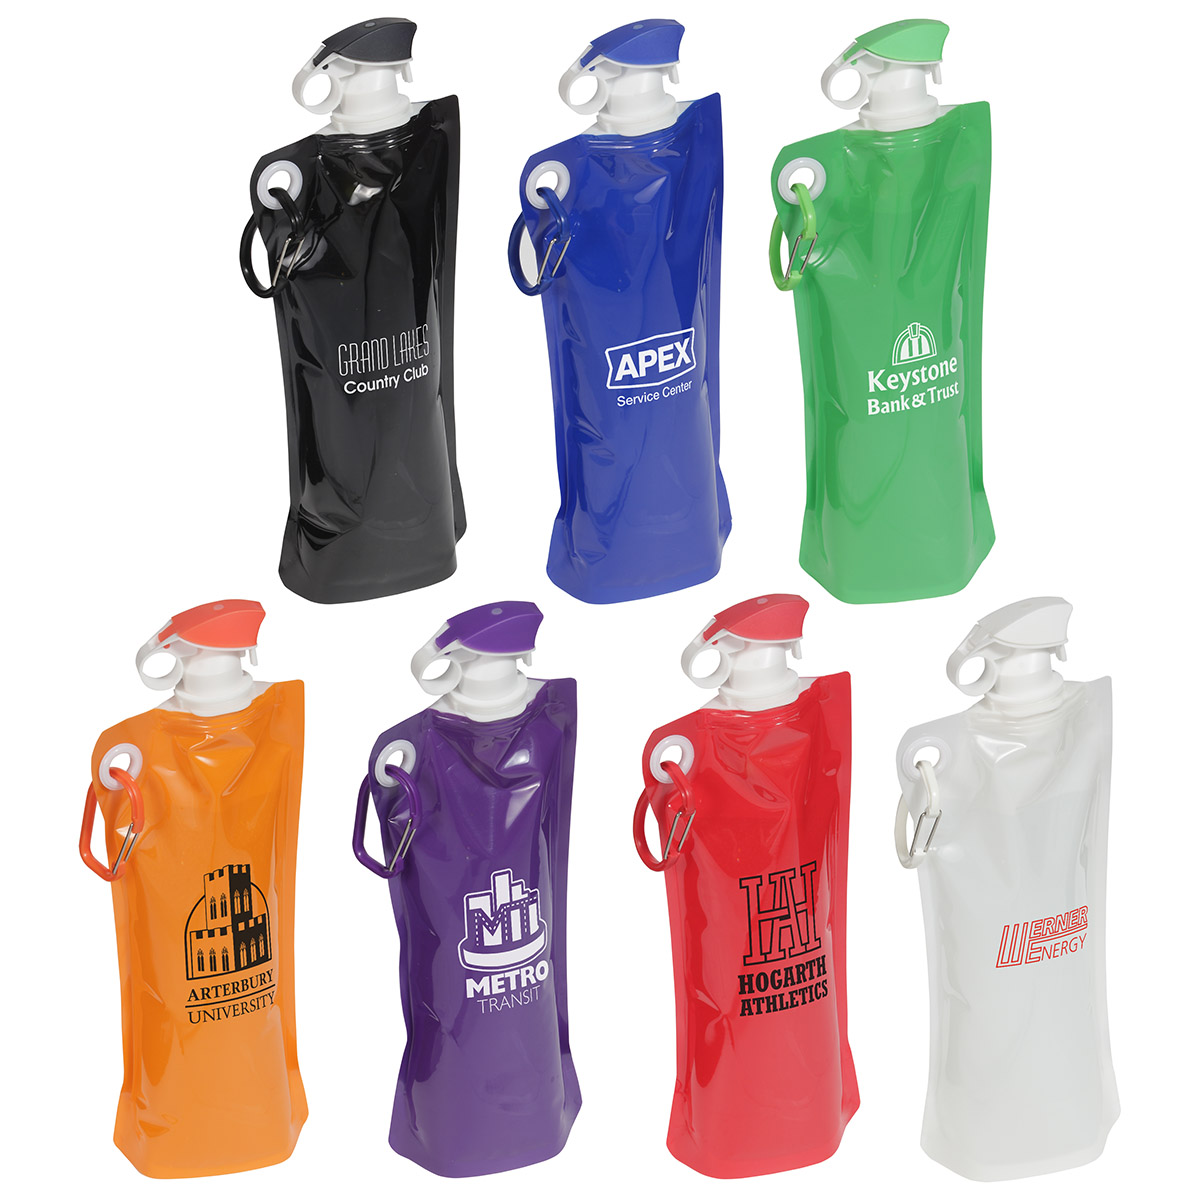 Flip Top Foldable Water Bottle with Carabiner, WKA-FT15, 1 Colour Imprint